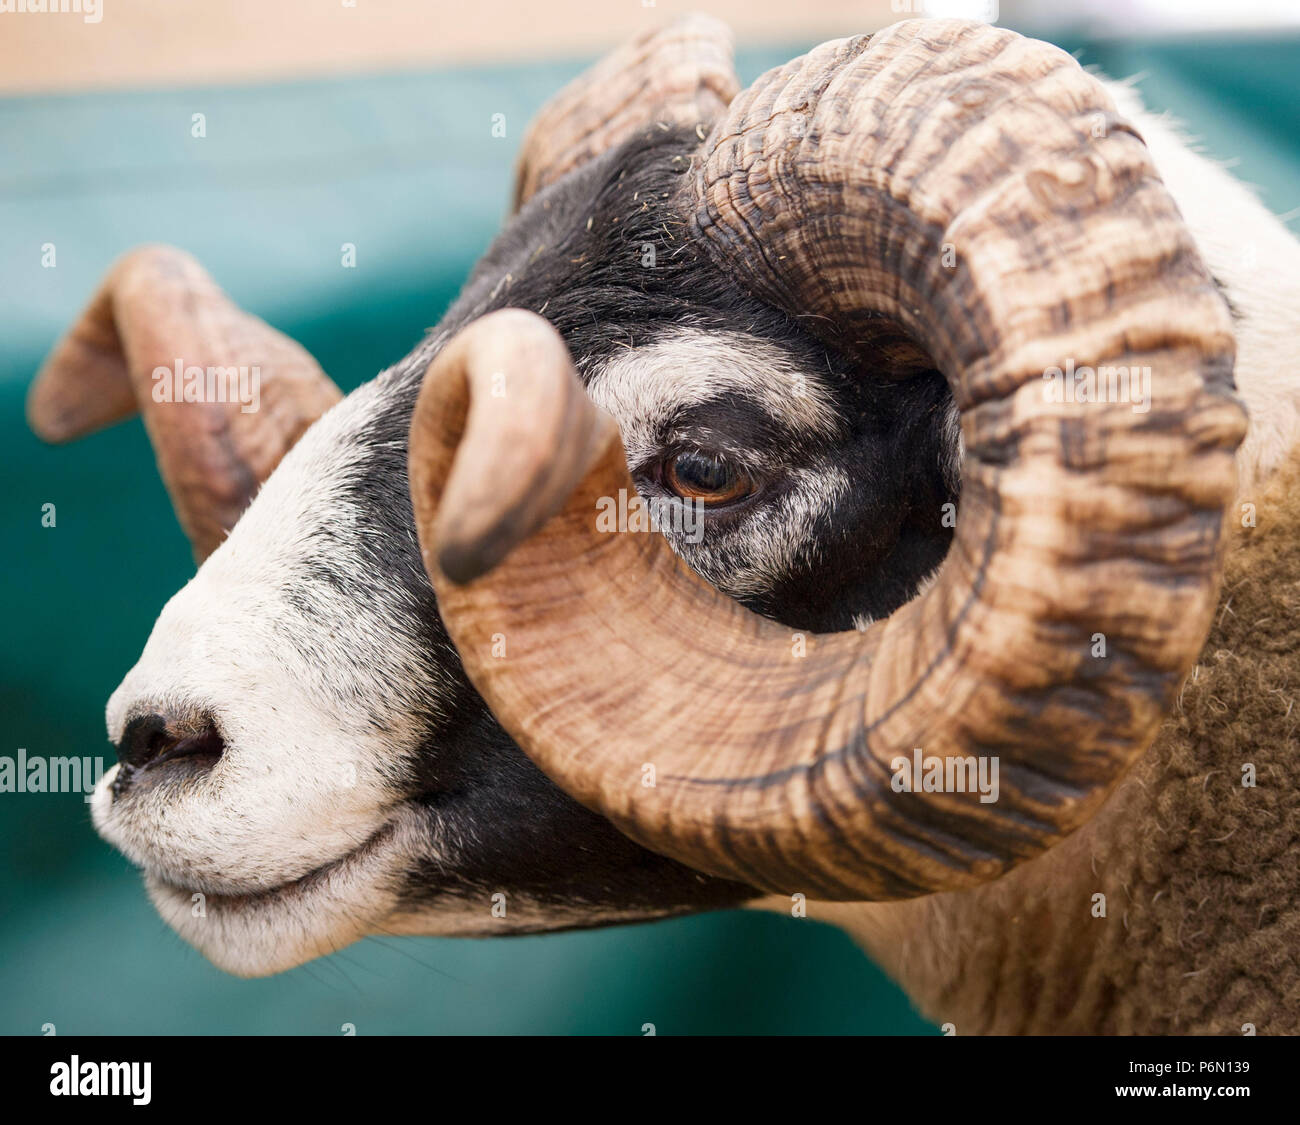 .RHS 2018: Retrato de una Ram Blacface en Royal Highland Show,Ingliston, Edimburgo, Escocia Imagen De Stock